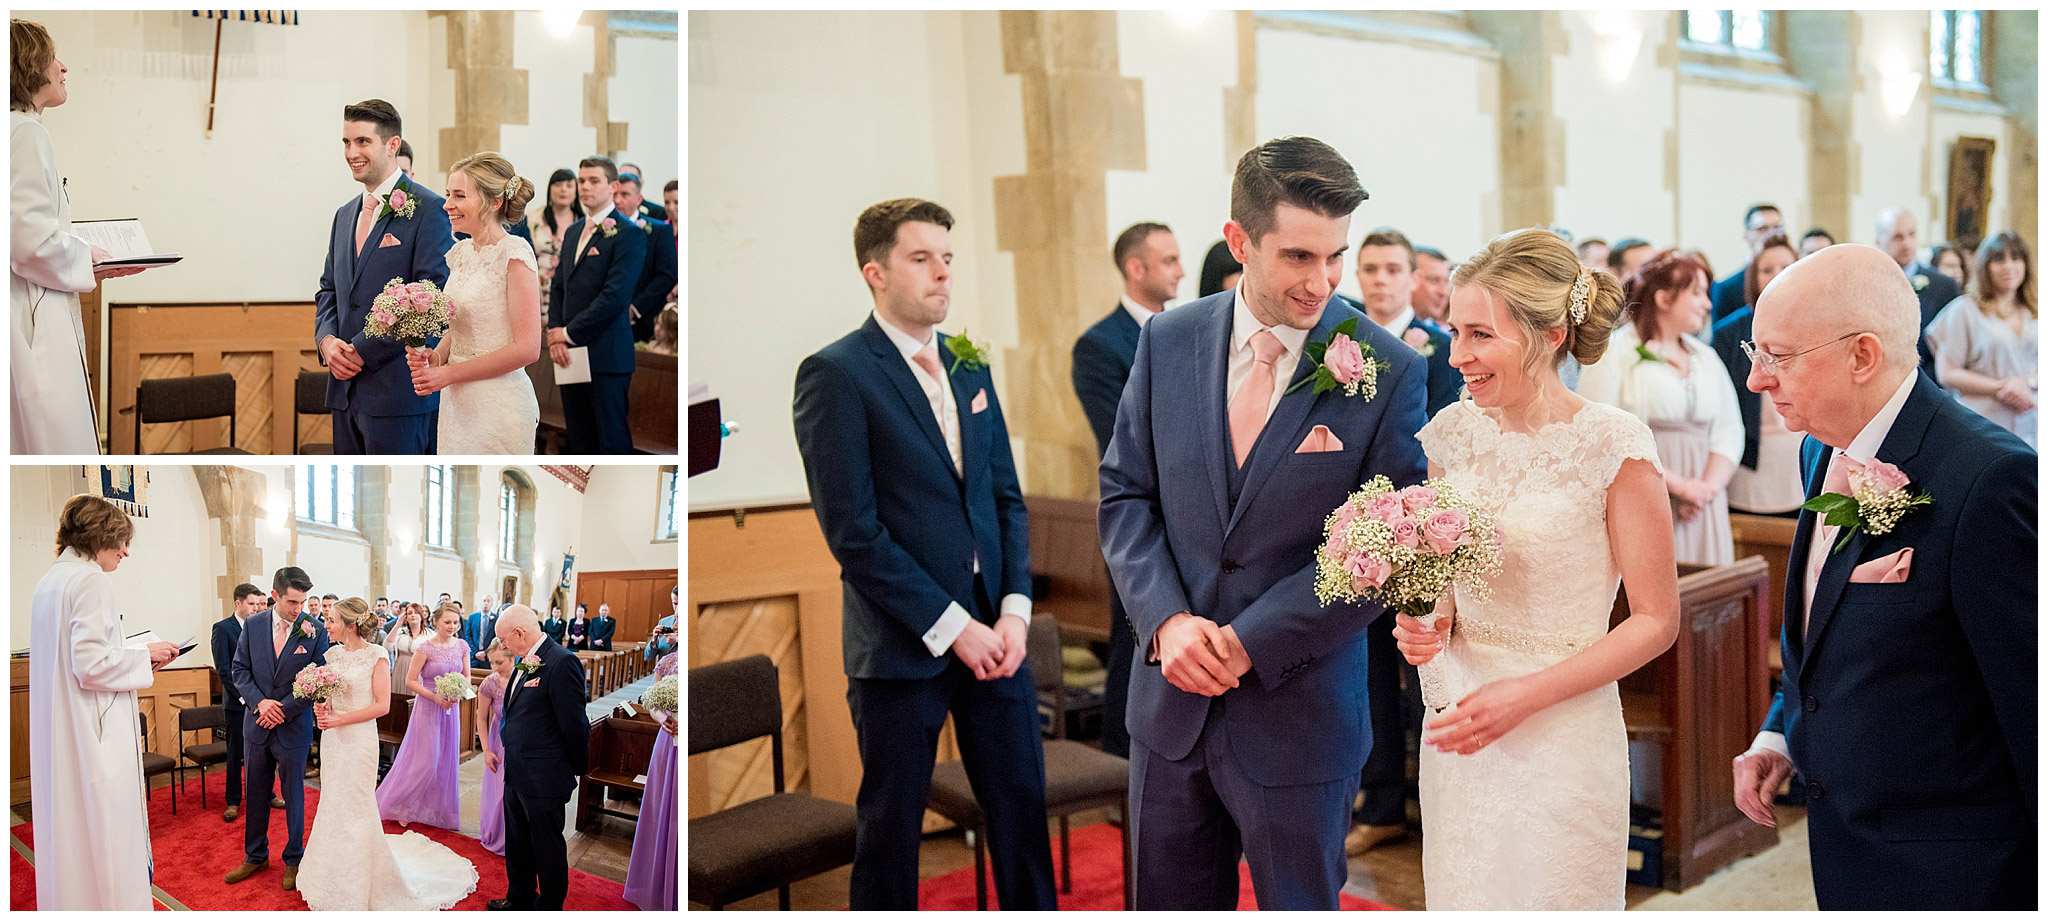 bride and groom meet at the church alter